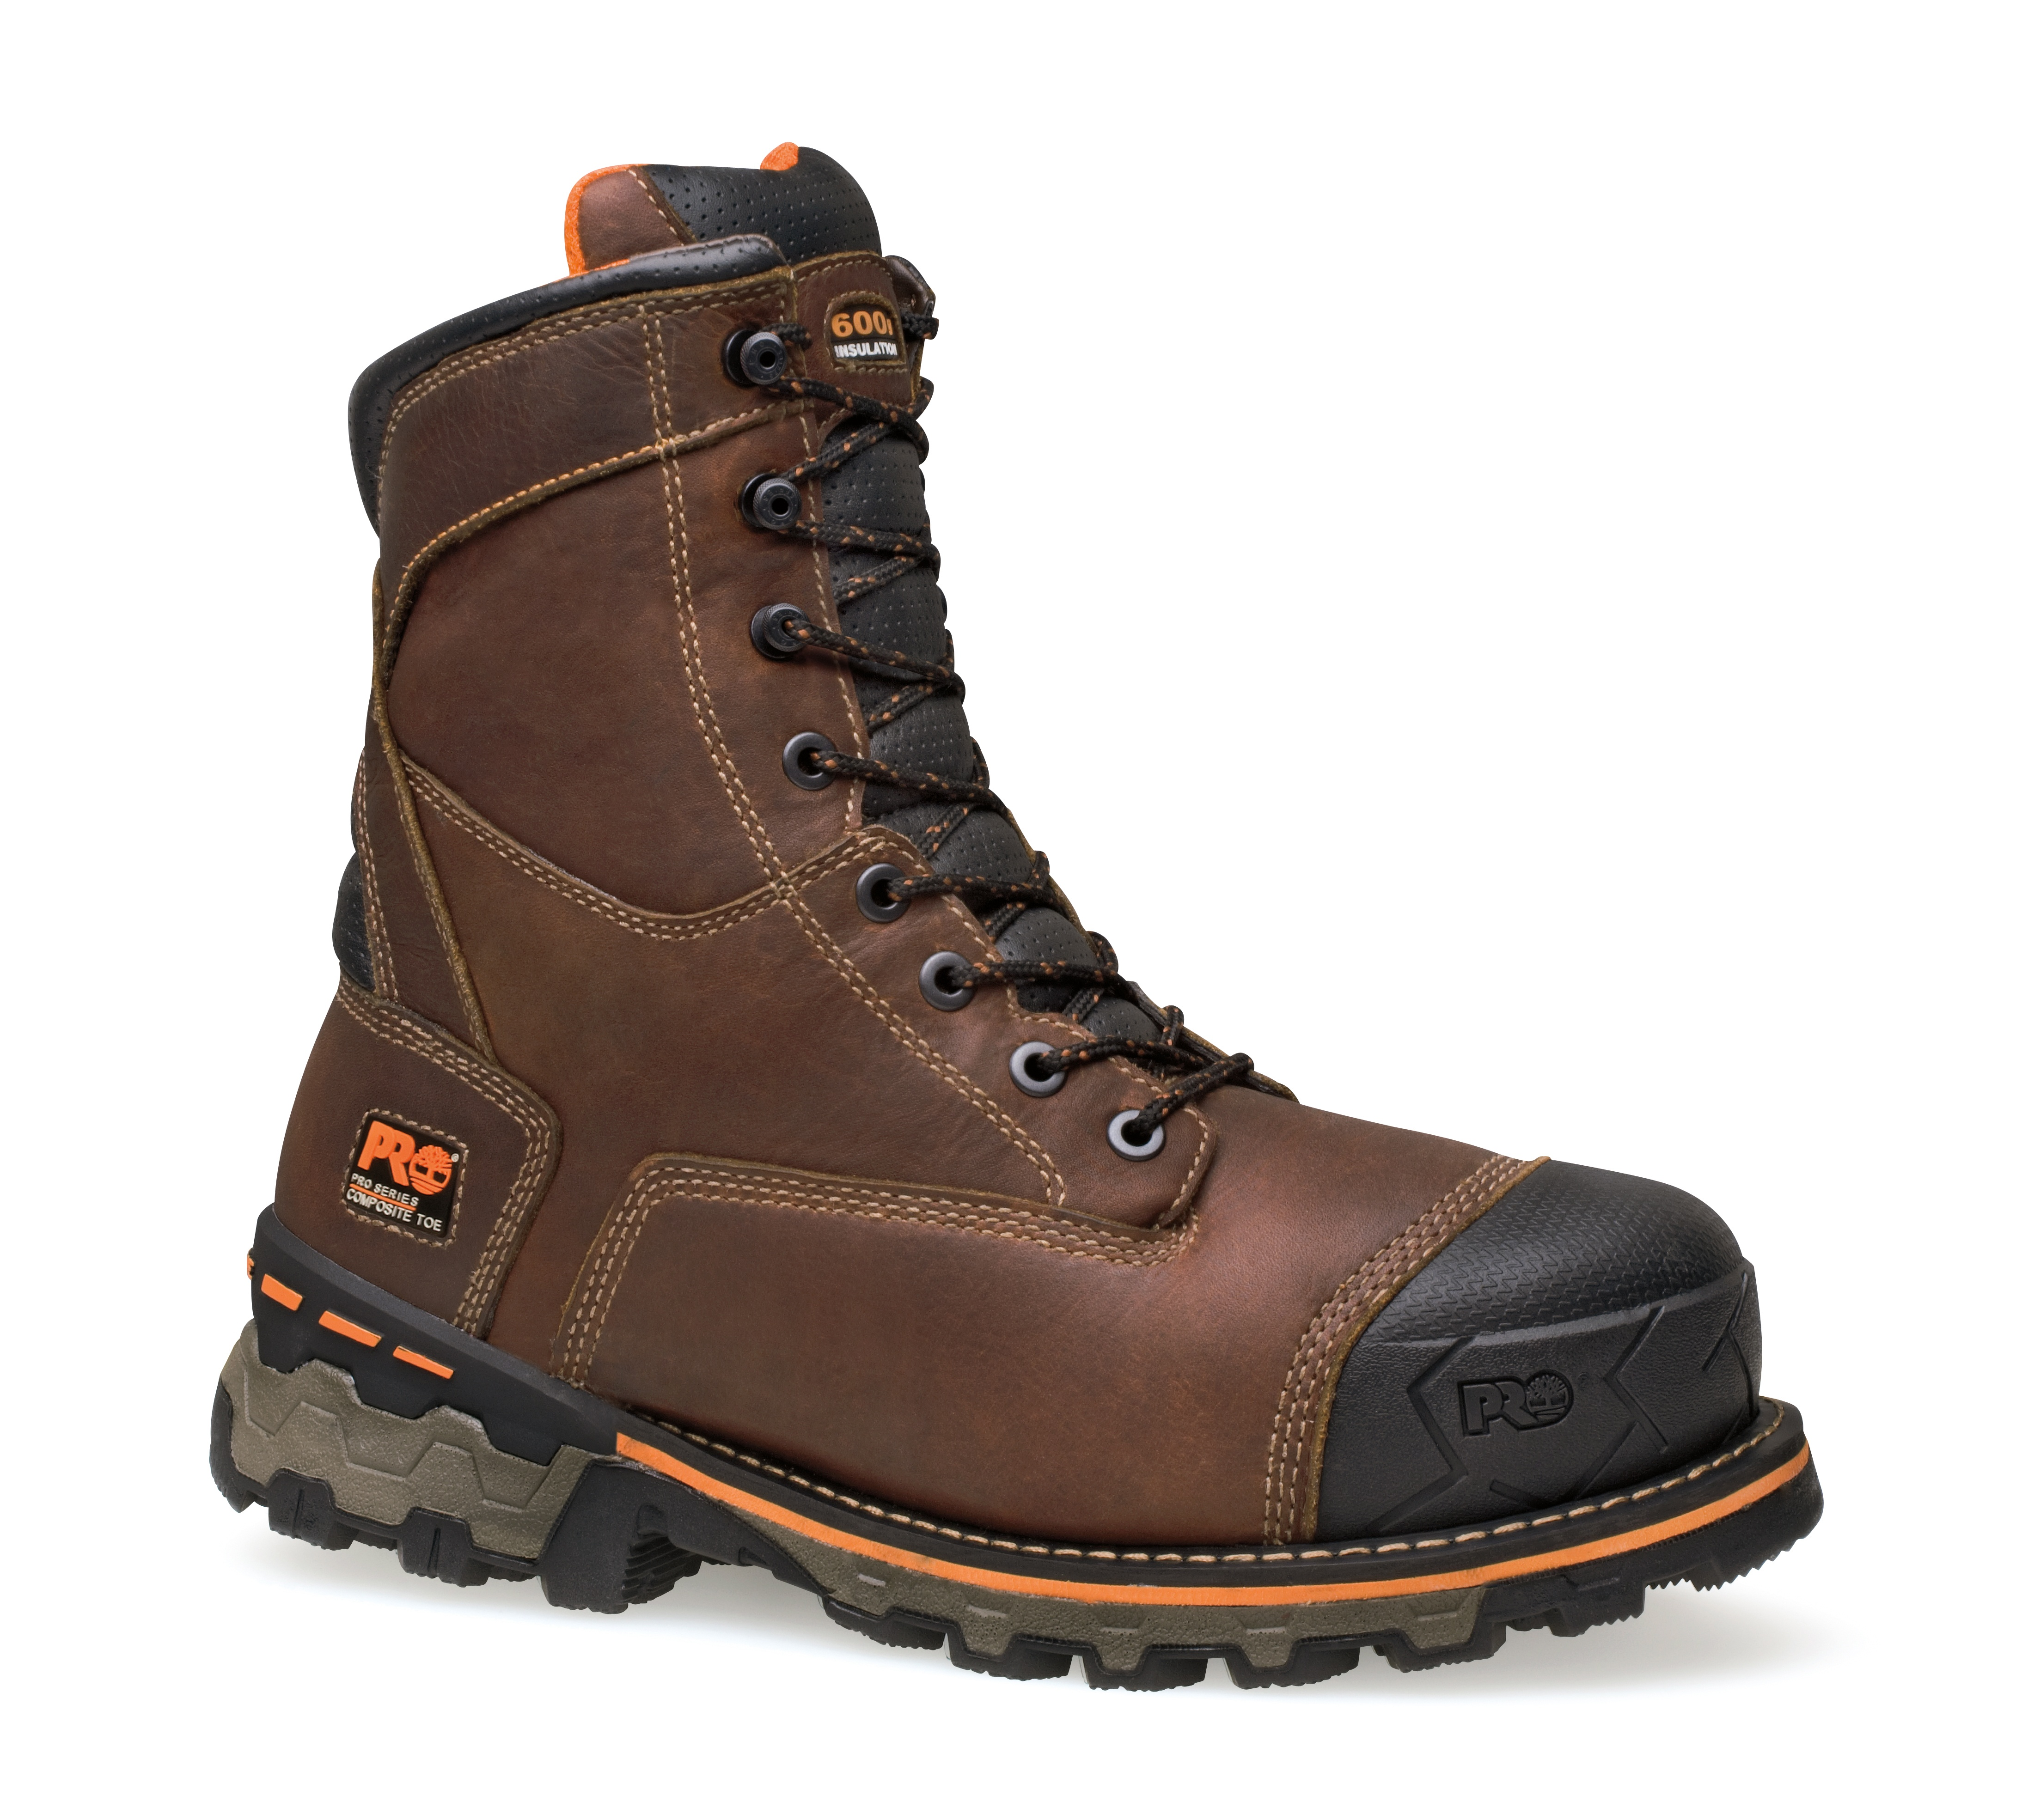 OSHA compliant workboot provided by ORR Safety Boot and Shoe Program